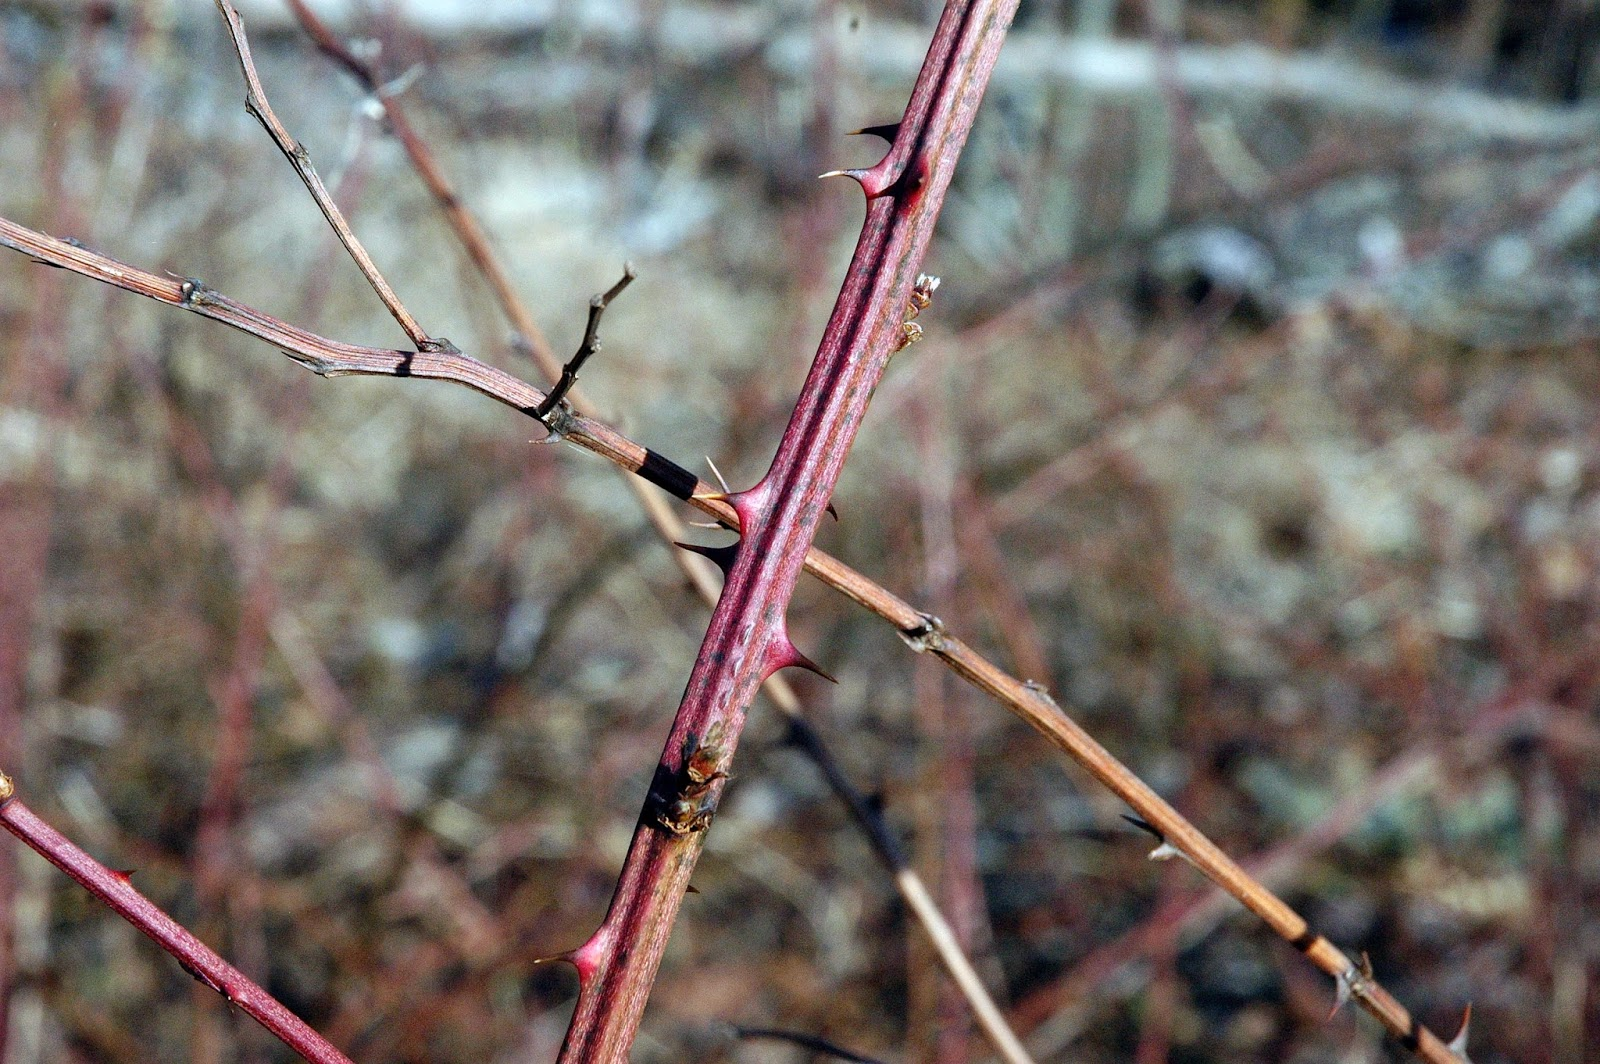 Field Biology in Southeastern Ohio: A Thorny Situation